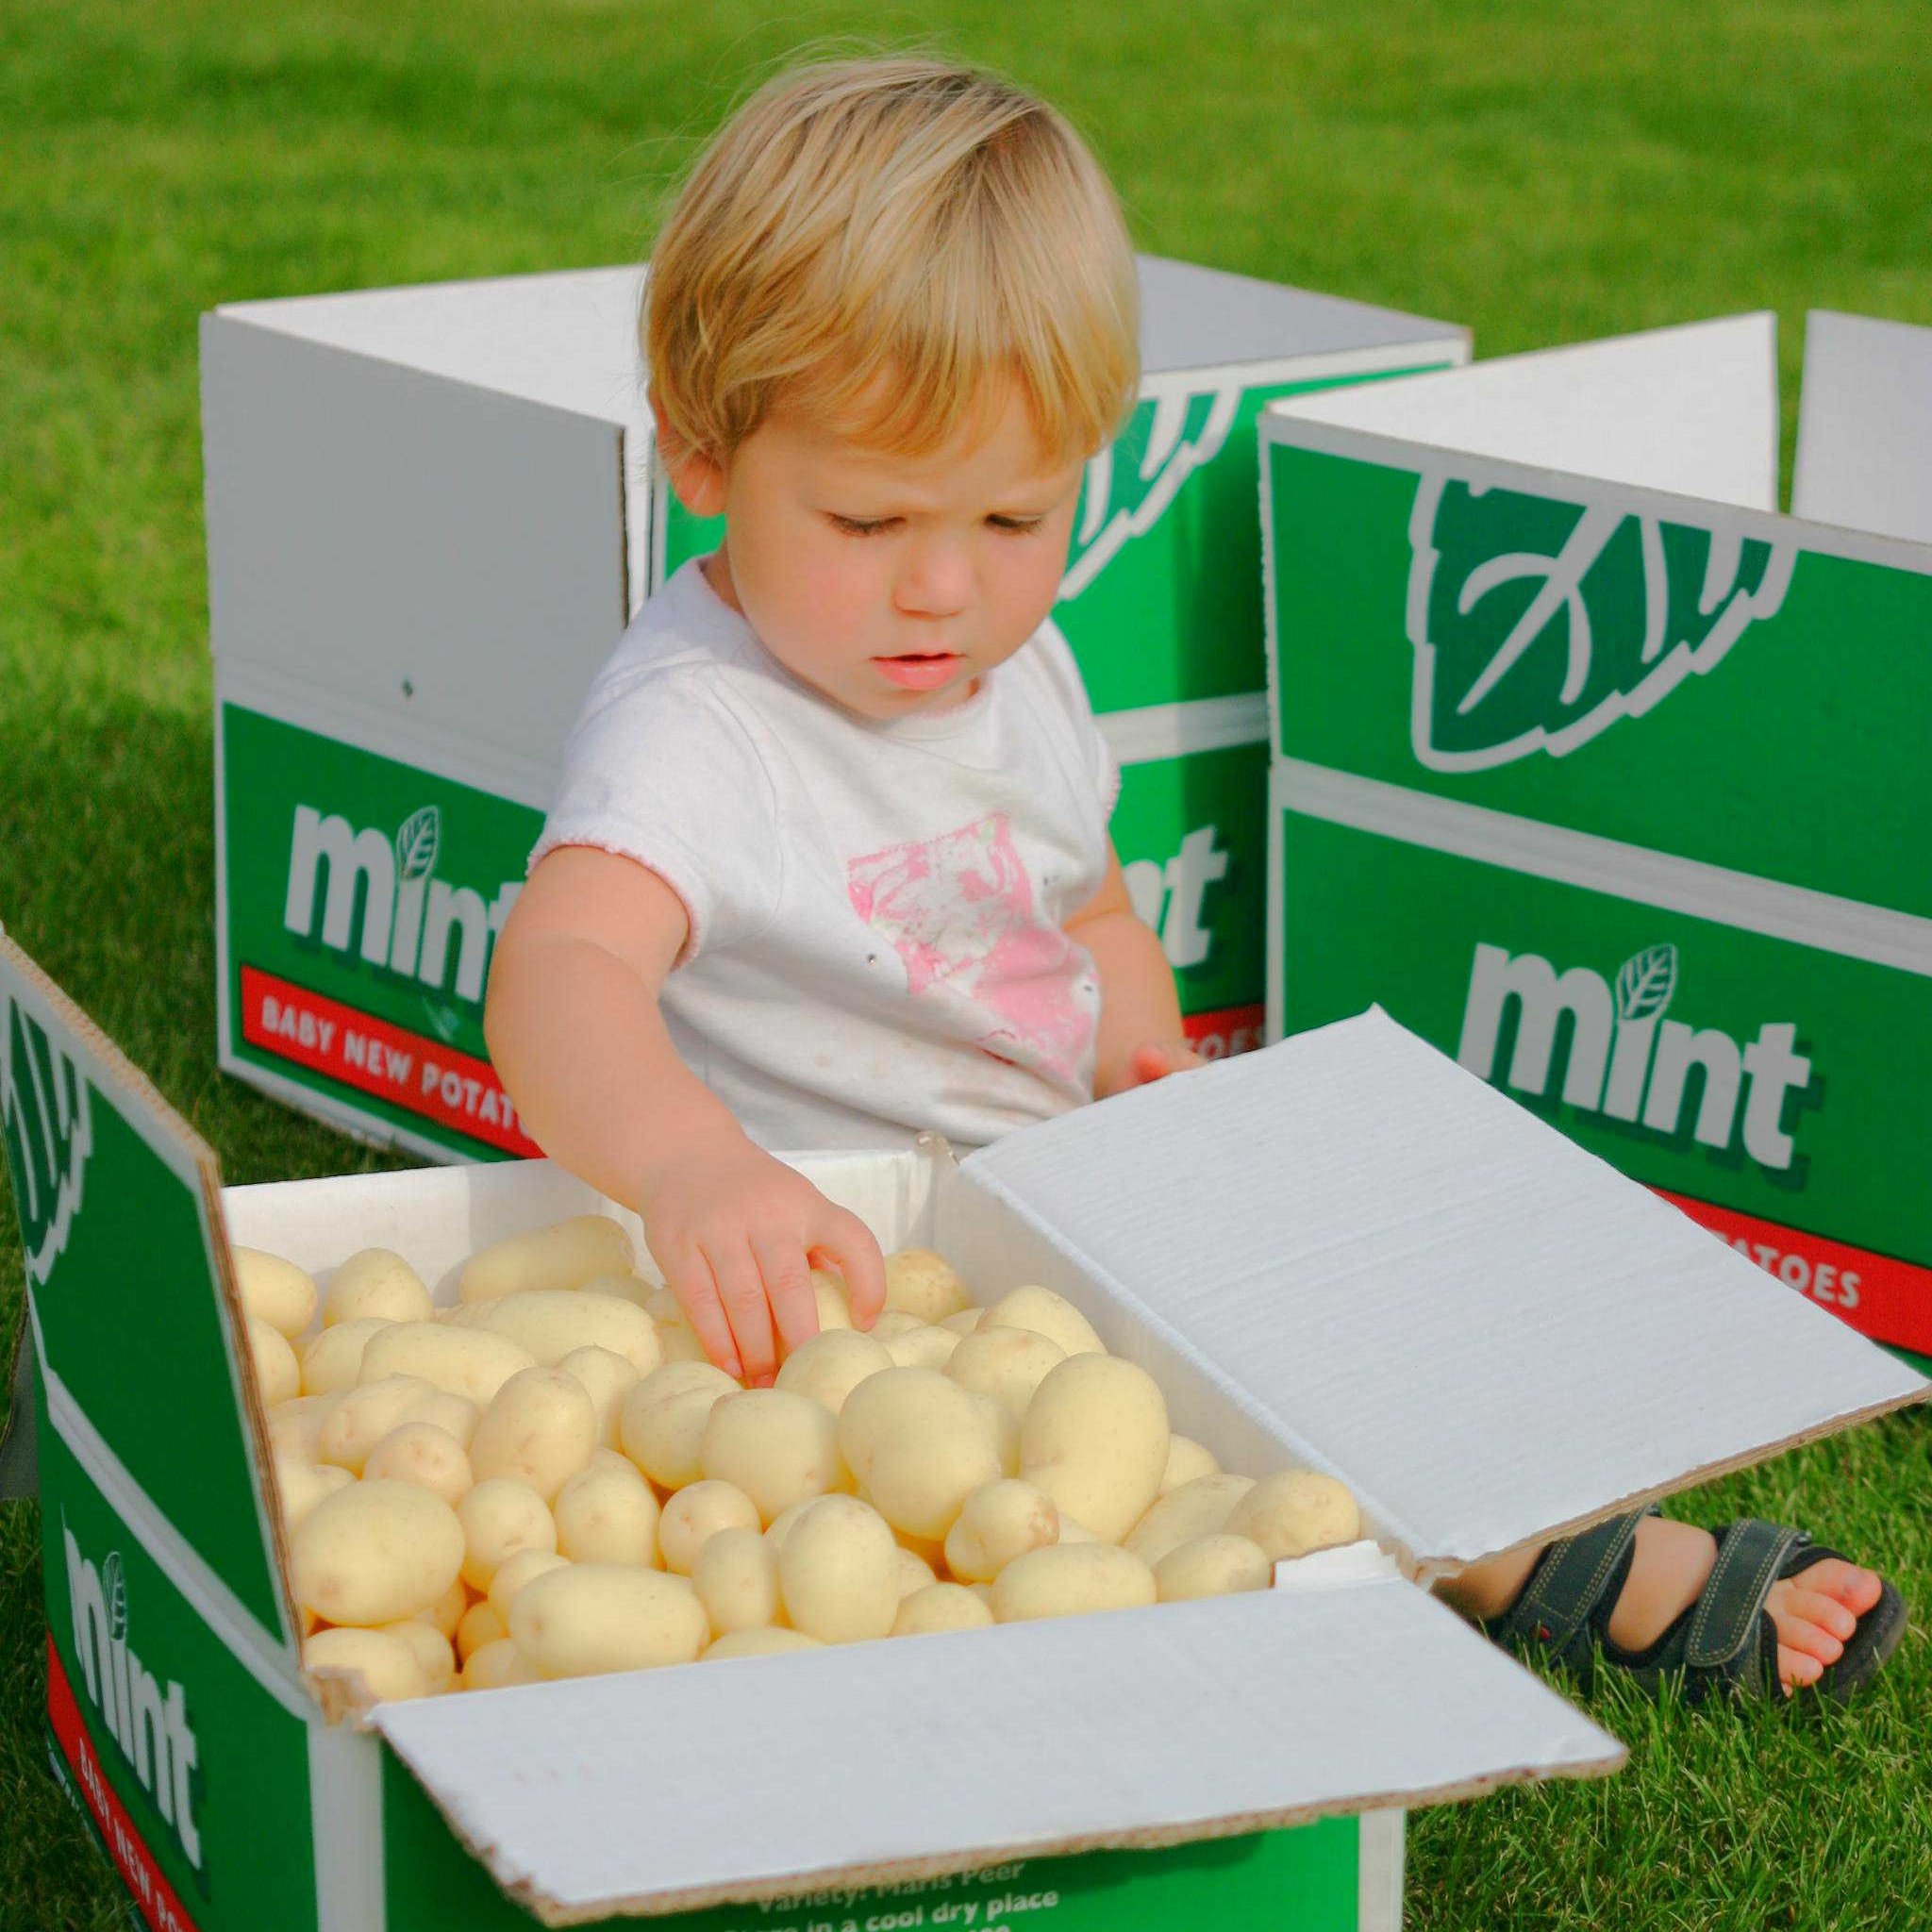 Mint Baby Potatoes